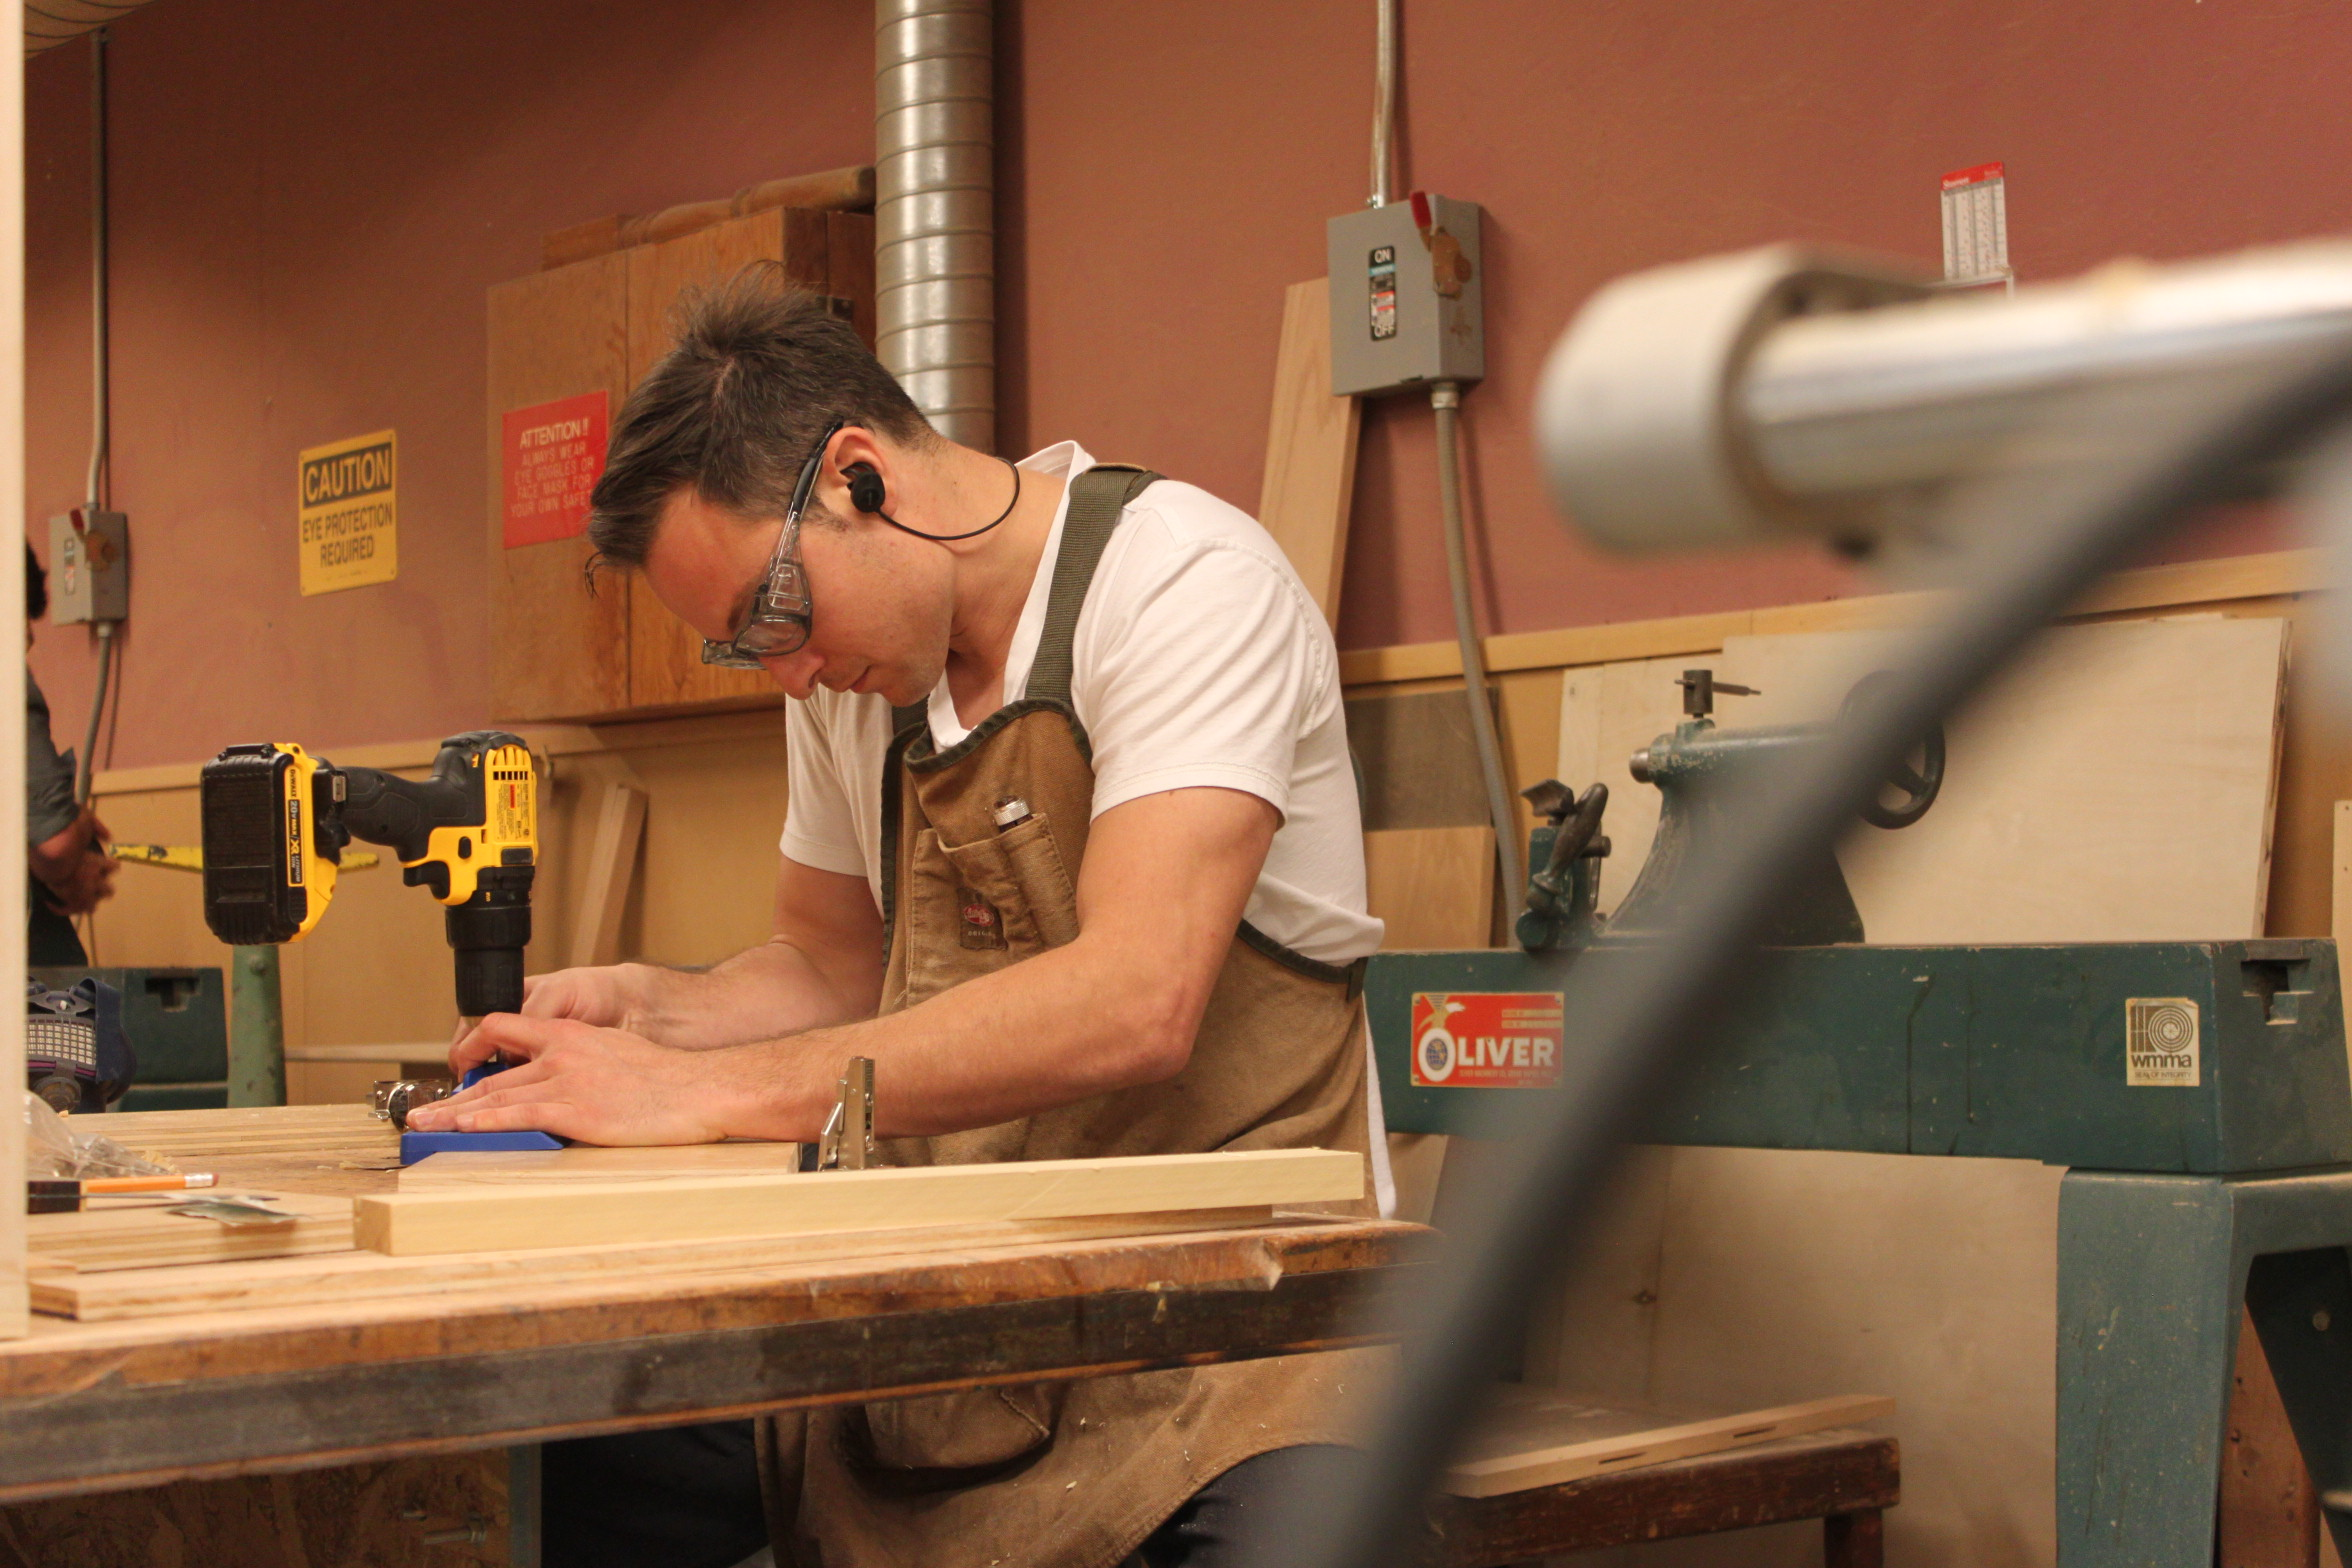 City college student Cem Turhal carefully uses a drill to place hinges on the doors he has crafted for his entertainment center. Turhal has already learned skills from the beginning carpentry class that he uses here. Photo taken by Bethaney Lee on Nov. 6, 2017.